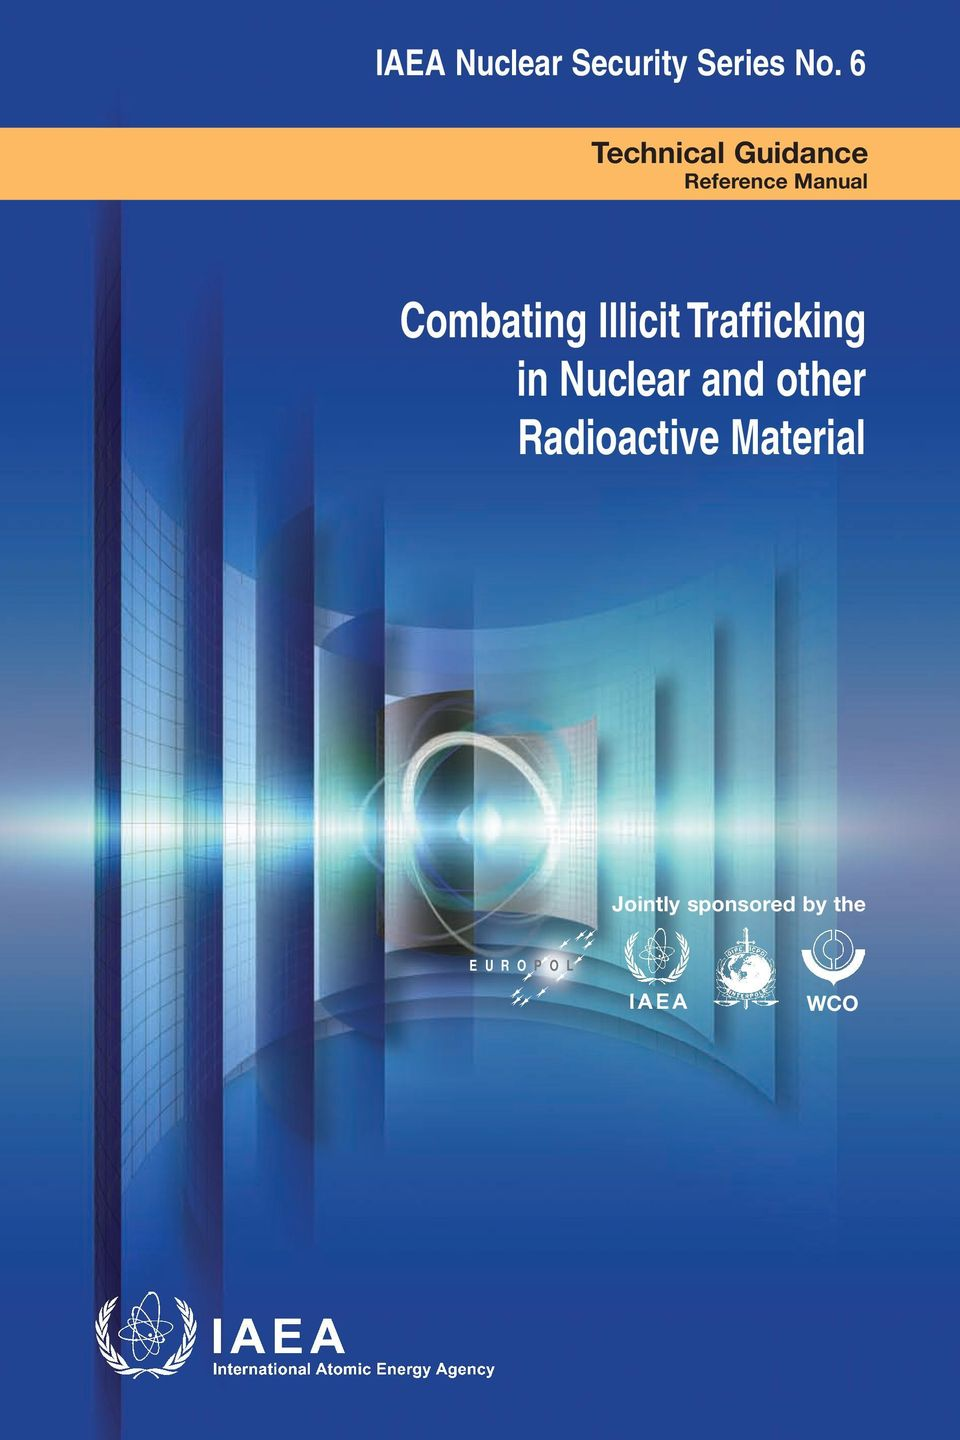 Combating Illicit Trafficking in Nuclear and